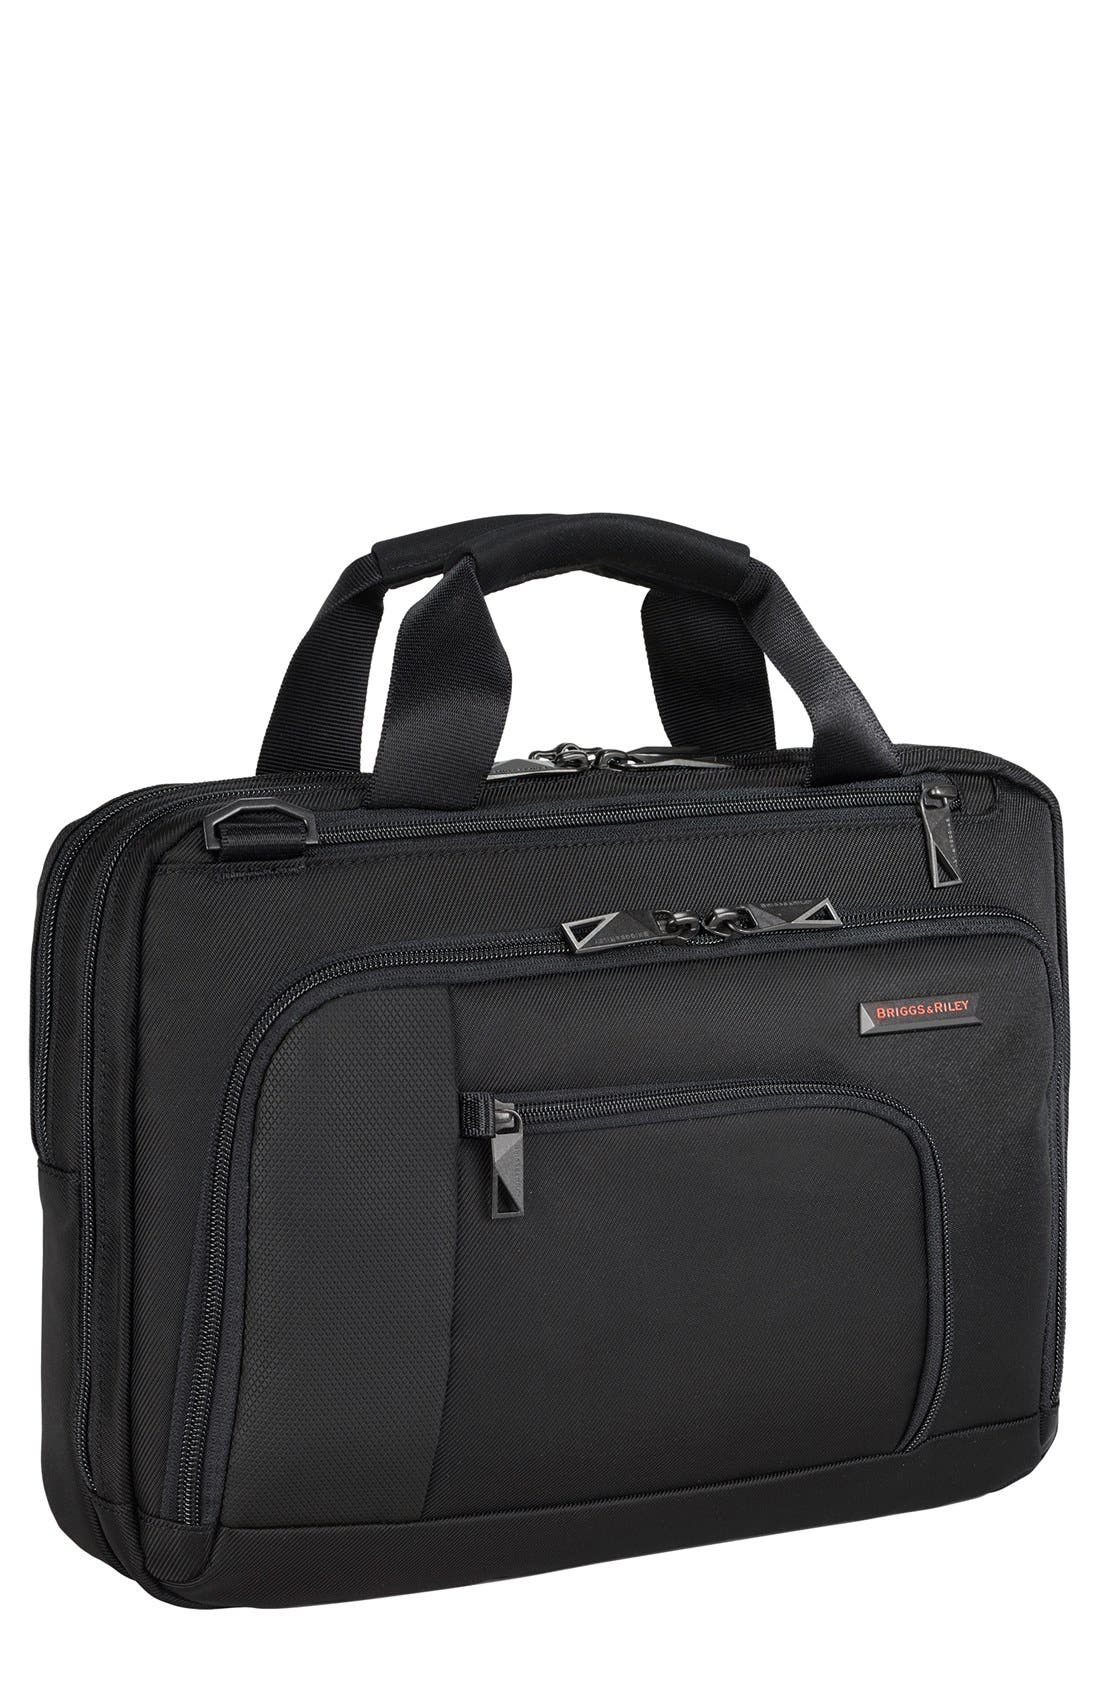 BRIGGS & RILEY 'Verb - Contact' Small Briefcase, Main, color, BLACK